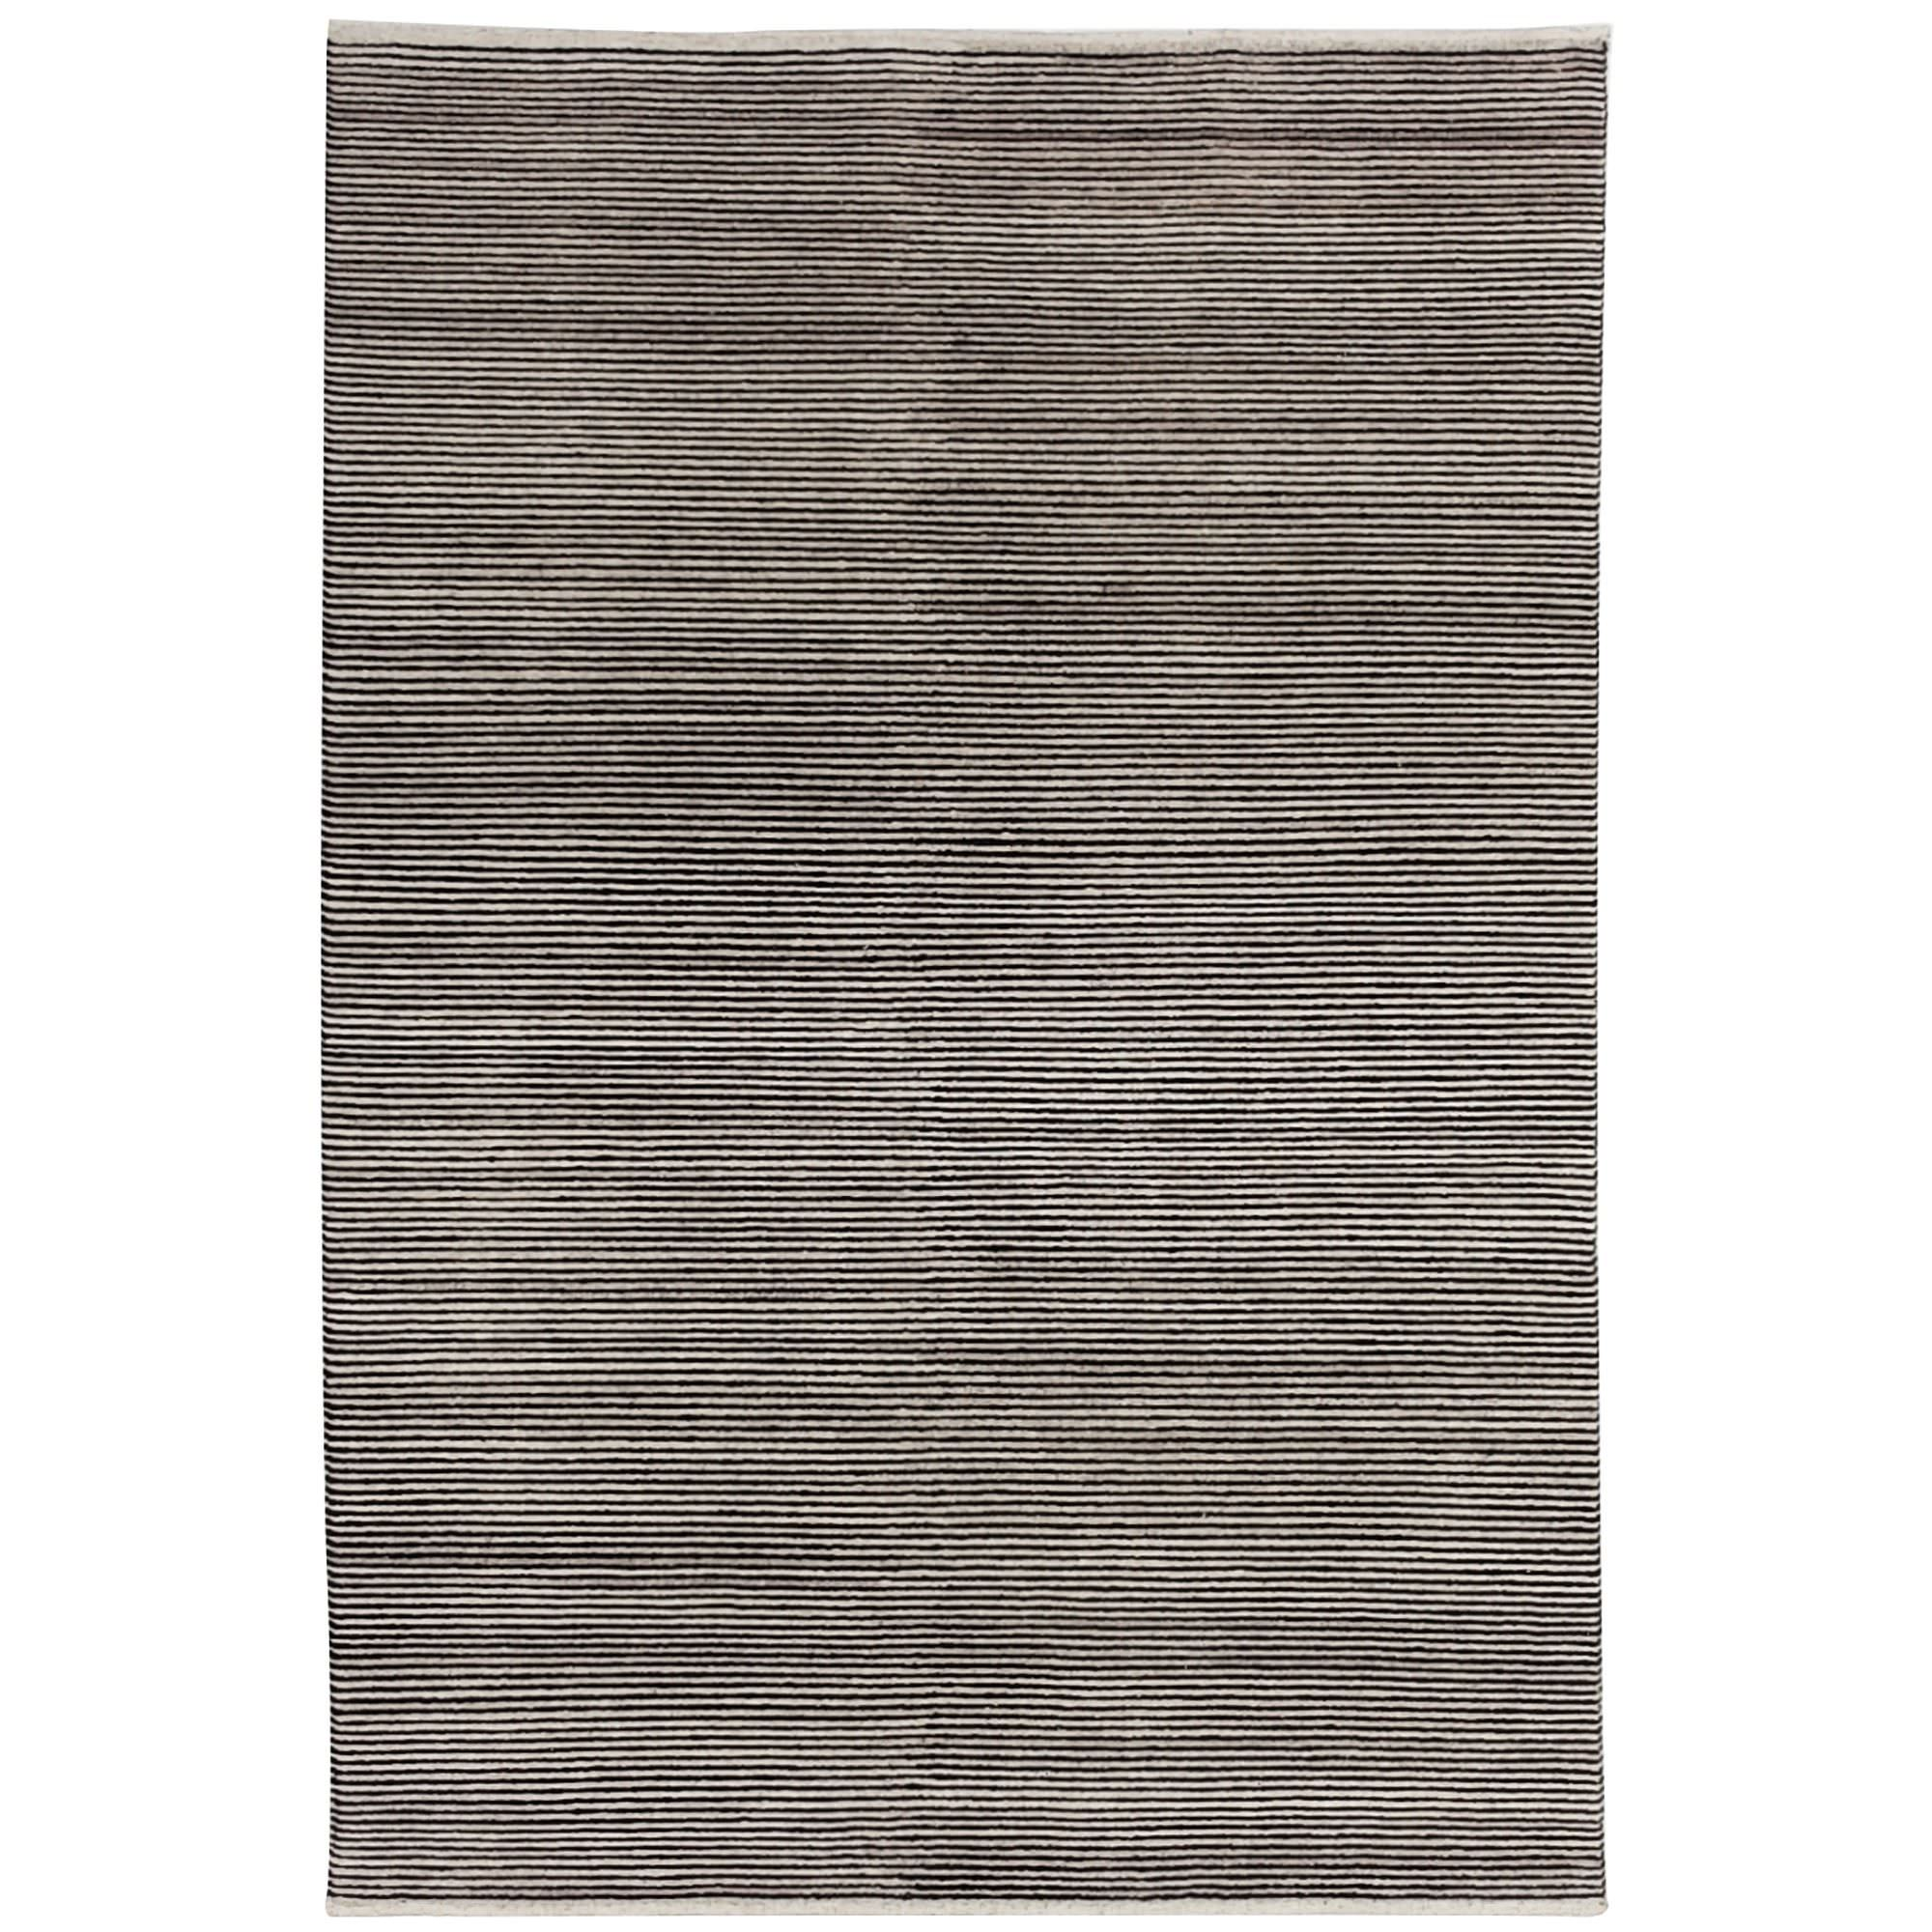 Boheme Hand Tufted Wool Rug, 250x300cm, Charcoal